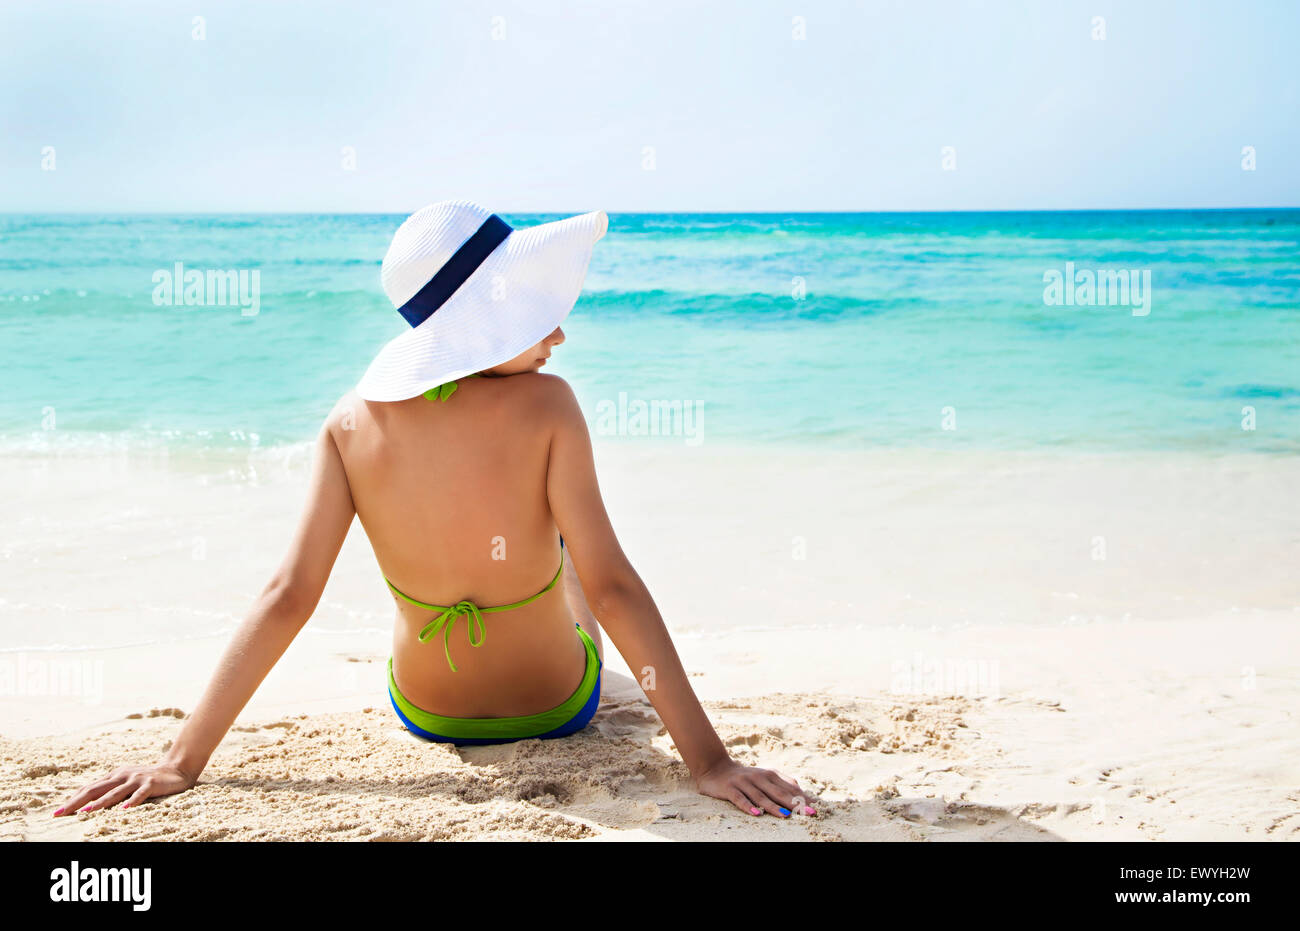 Rear view of a woman sitting on a beach - Stock Image